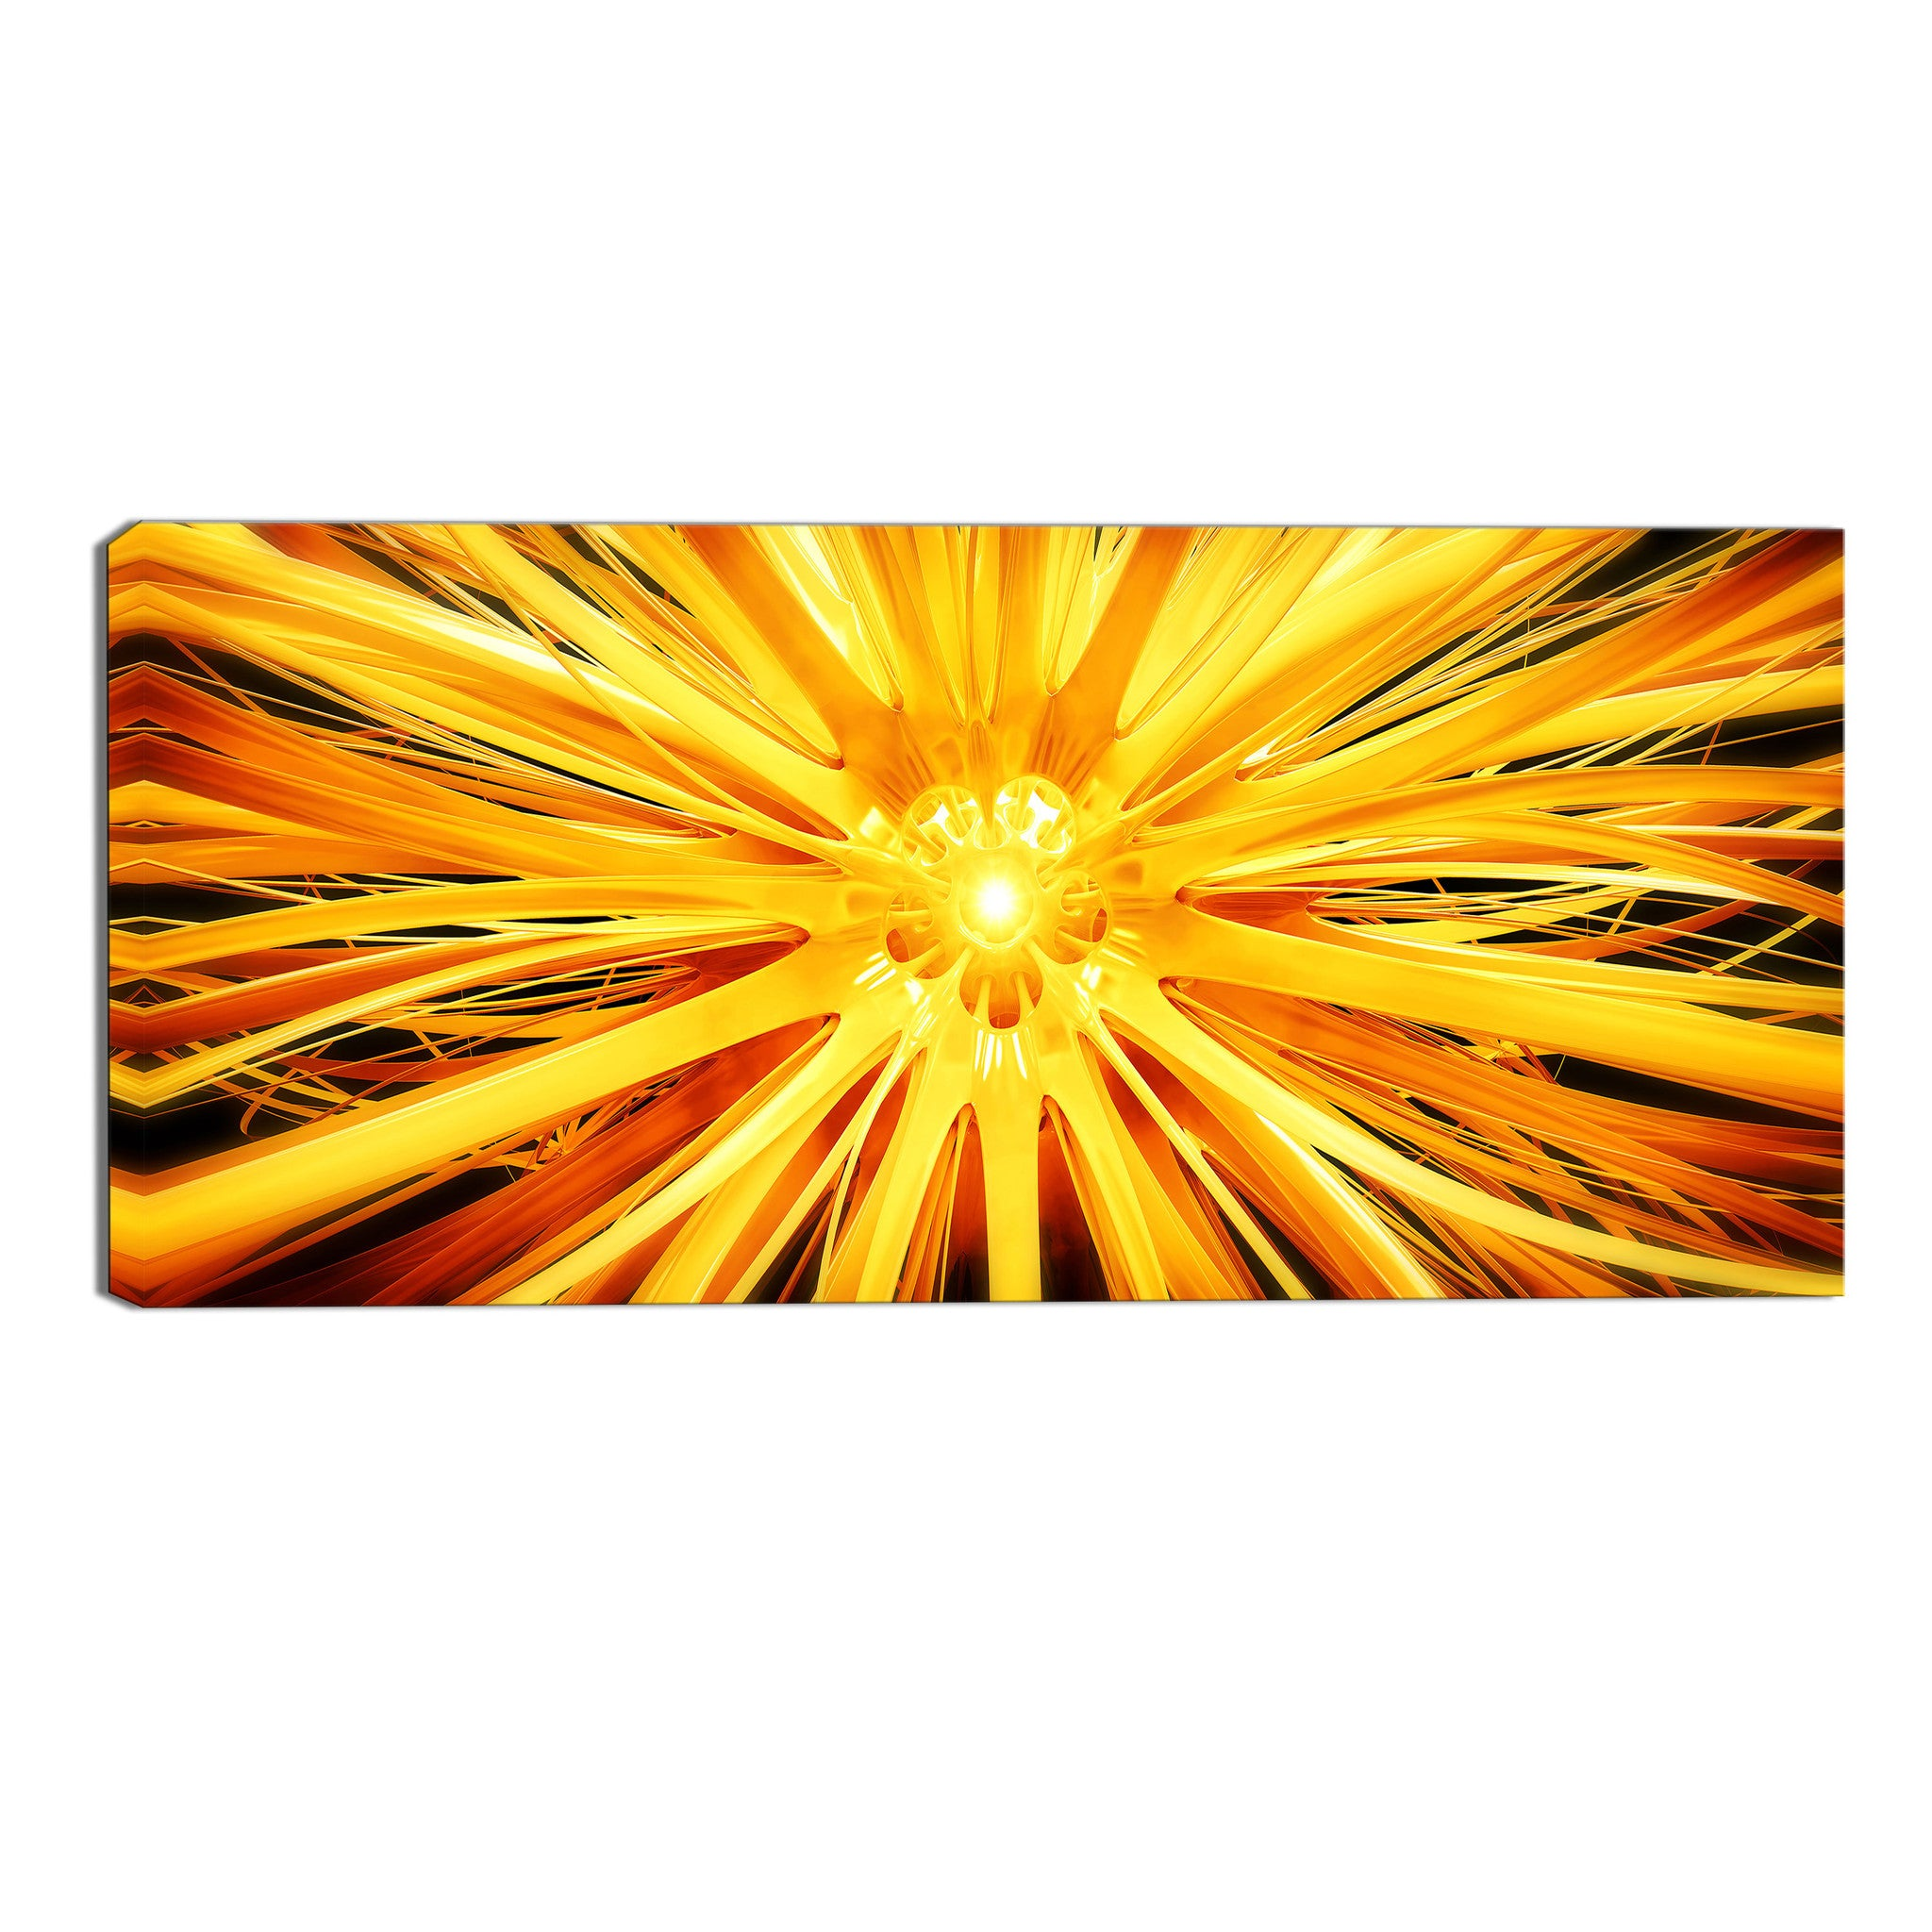 Outburst of Sunshine Abstract Canvas Wall Art Print – Accent Canvas